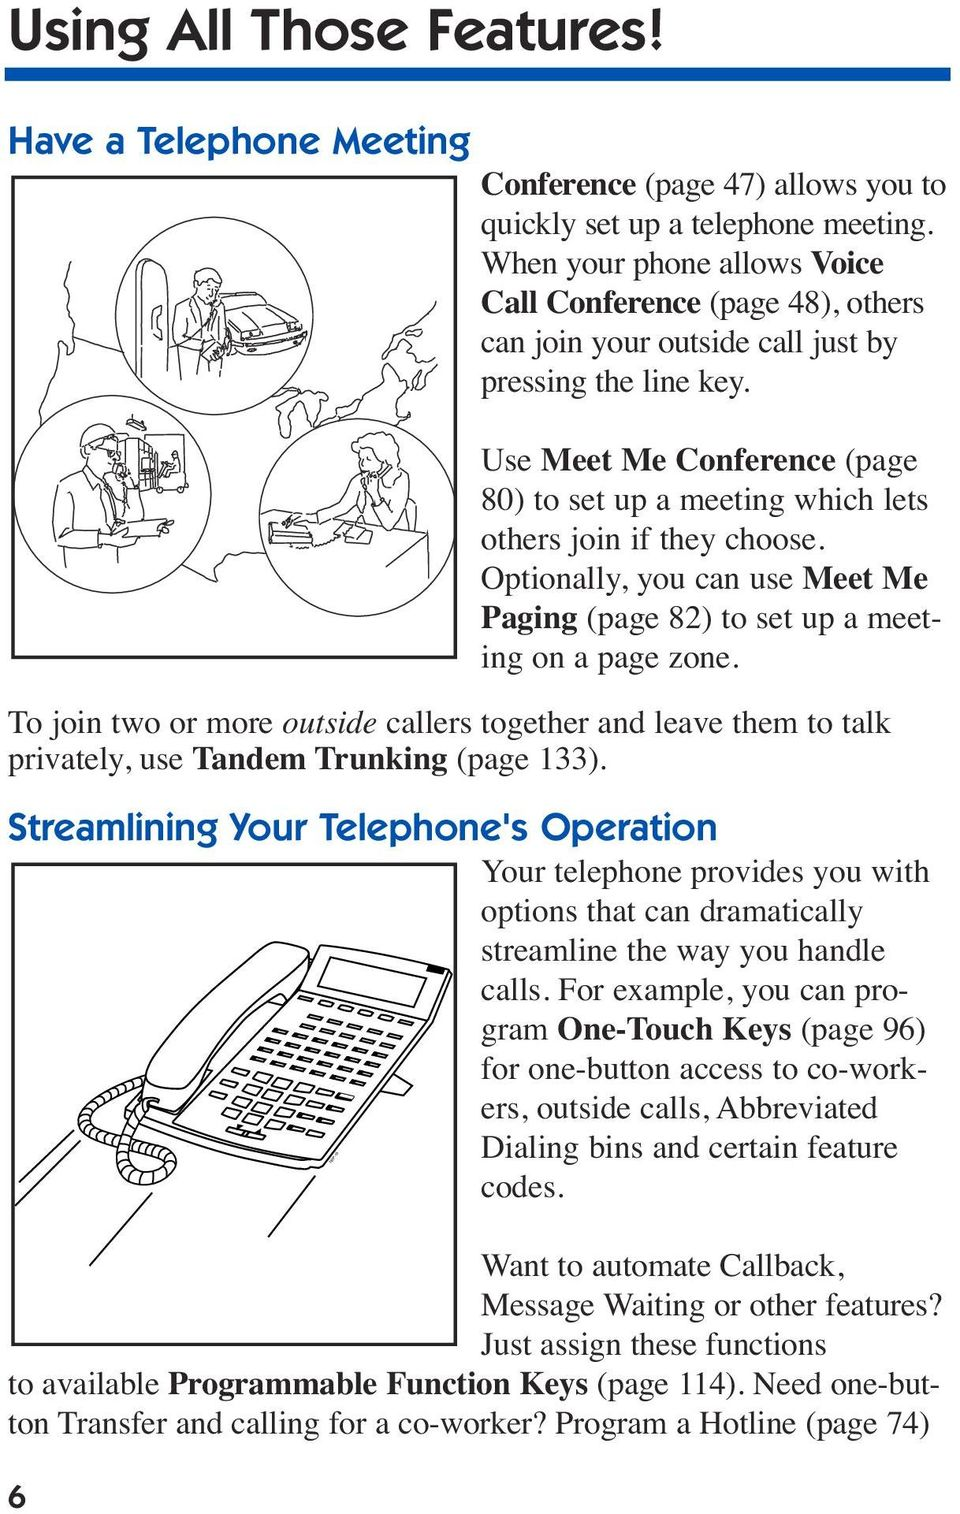 Use Meet Me Conference (page 80) to set up a meeting which lets others join if they choose. Optionally, you can use Meet Me Paging (page 82) to set up a meeting on a page zone.